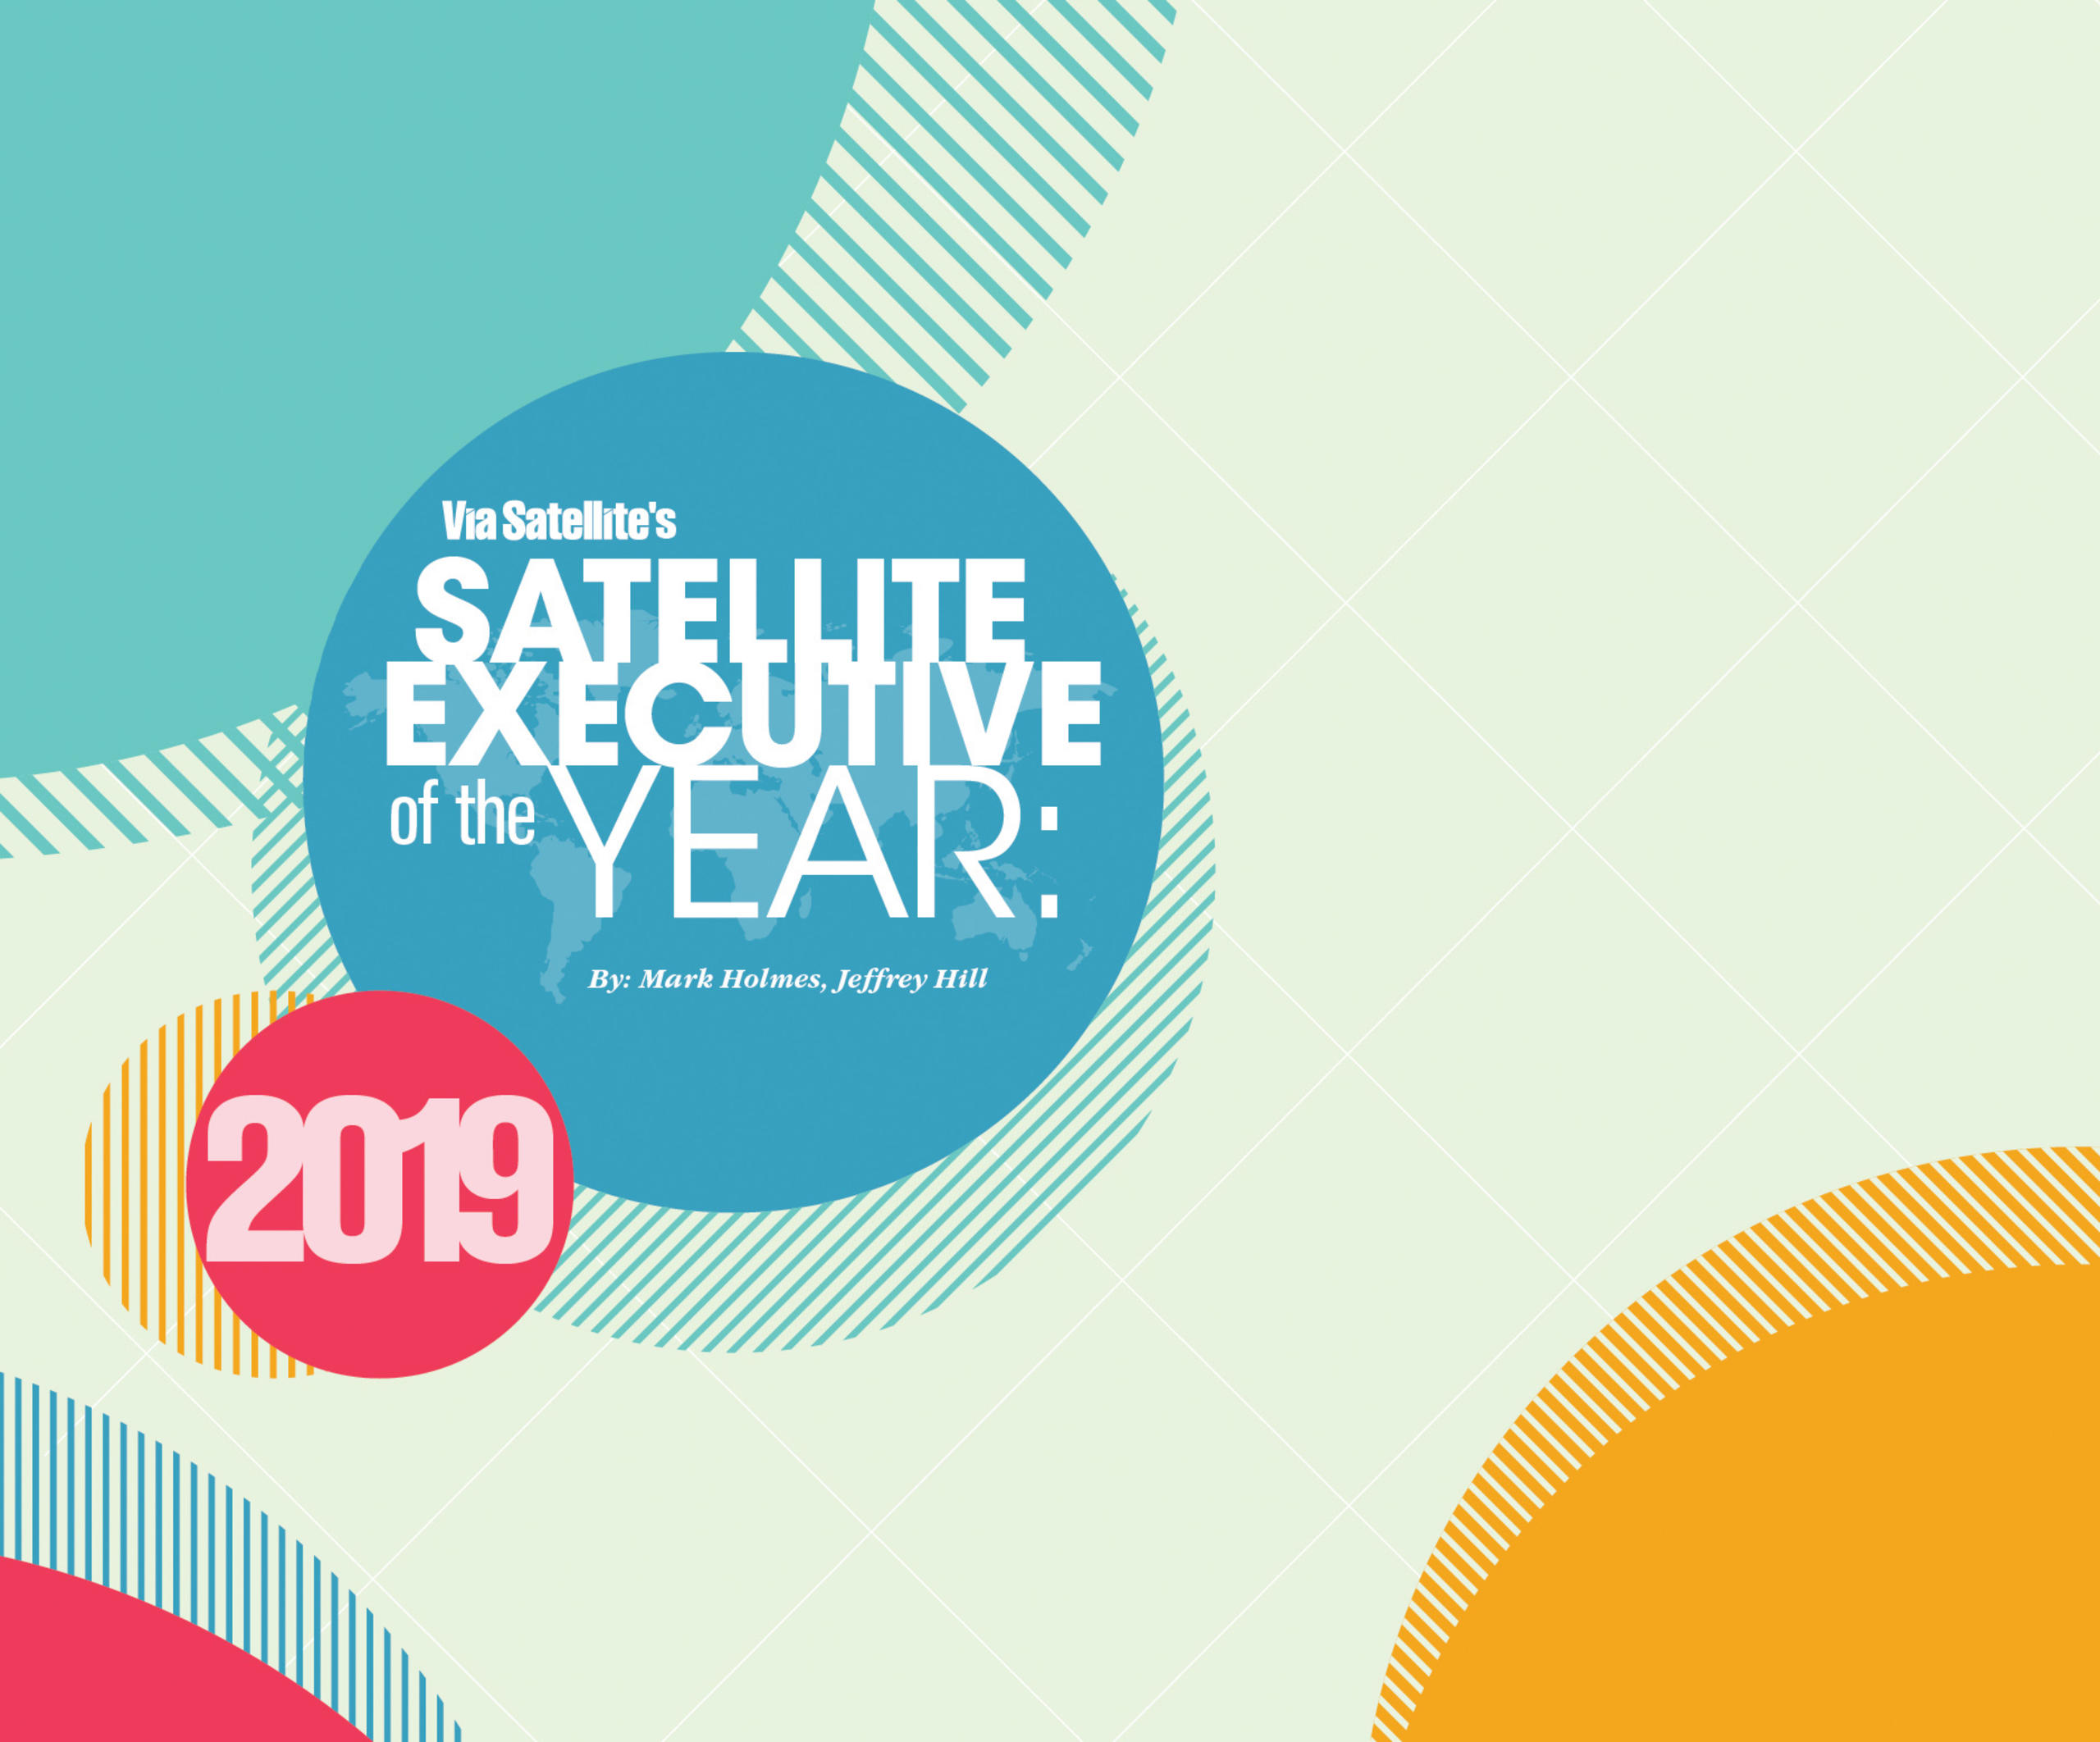 The Nominees for 2019 Satellite Executive of the Year